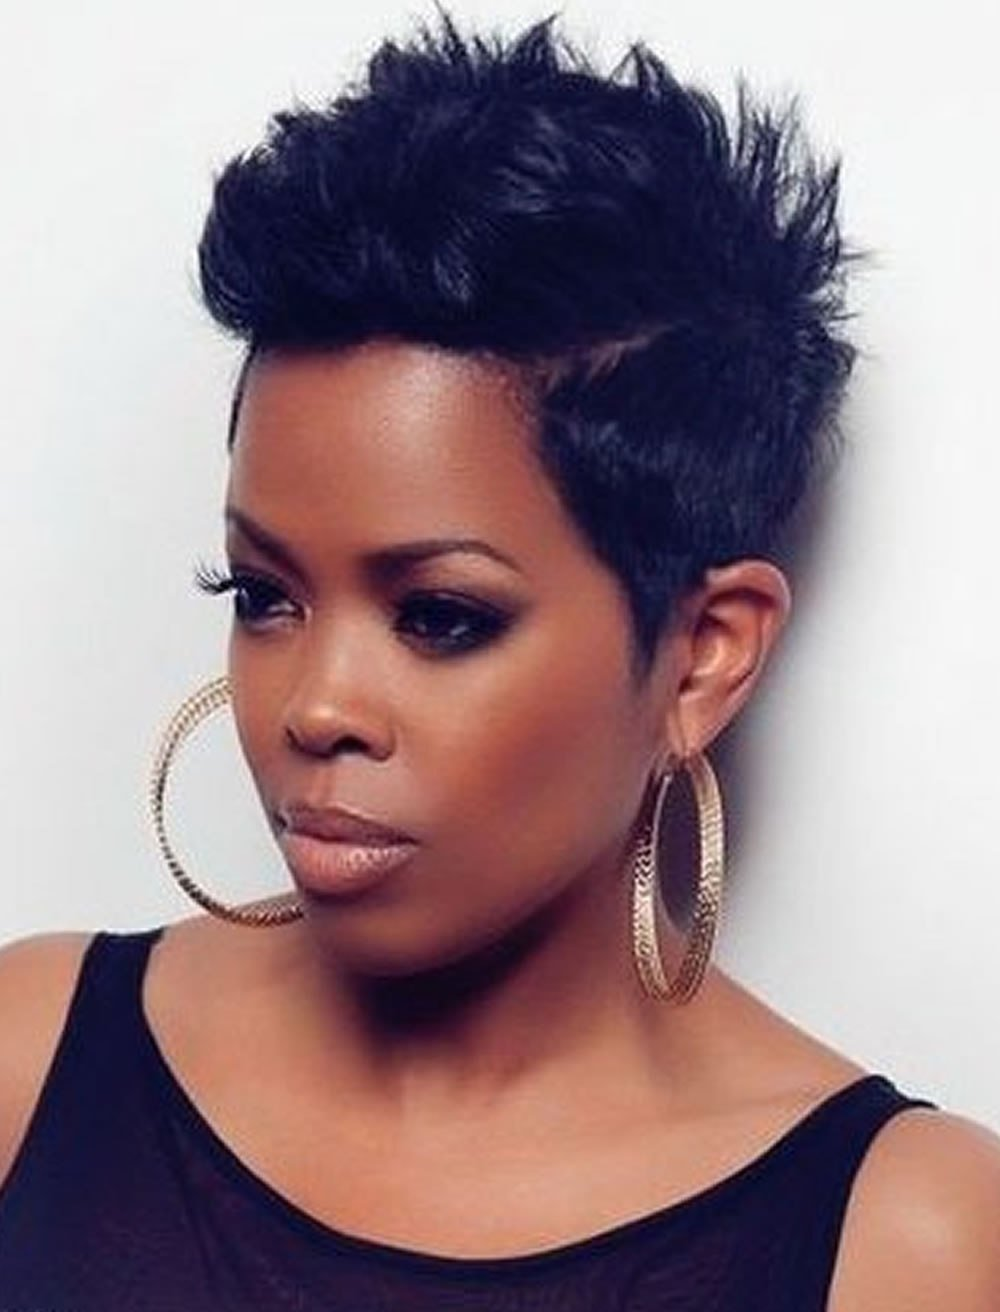 New Pixie Short Hairstyles For Black Women 2018 2019 – Hairstyles Ideas With Pictures